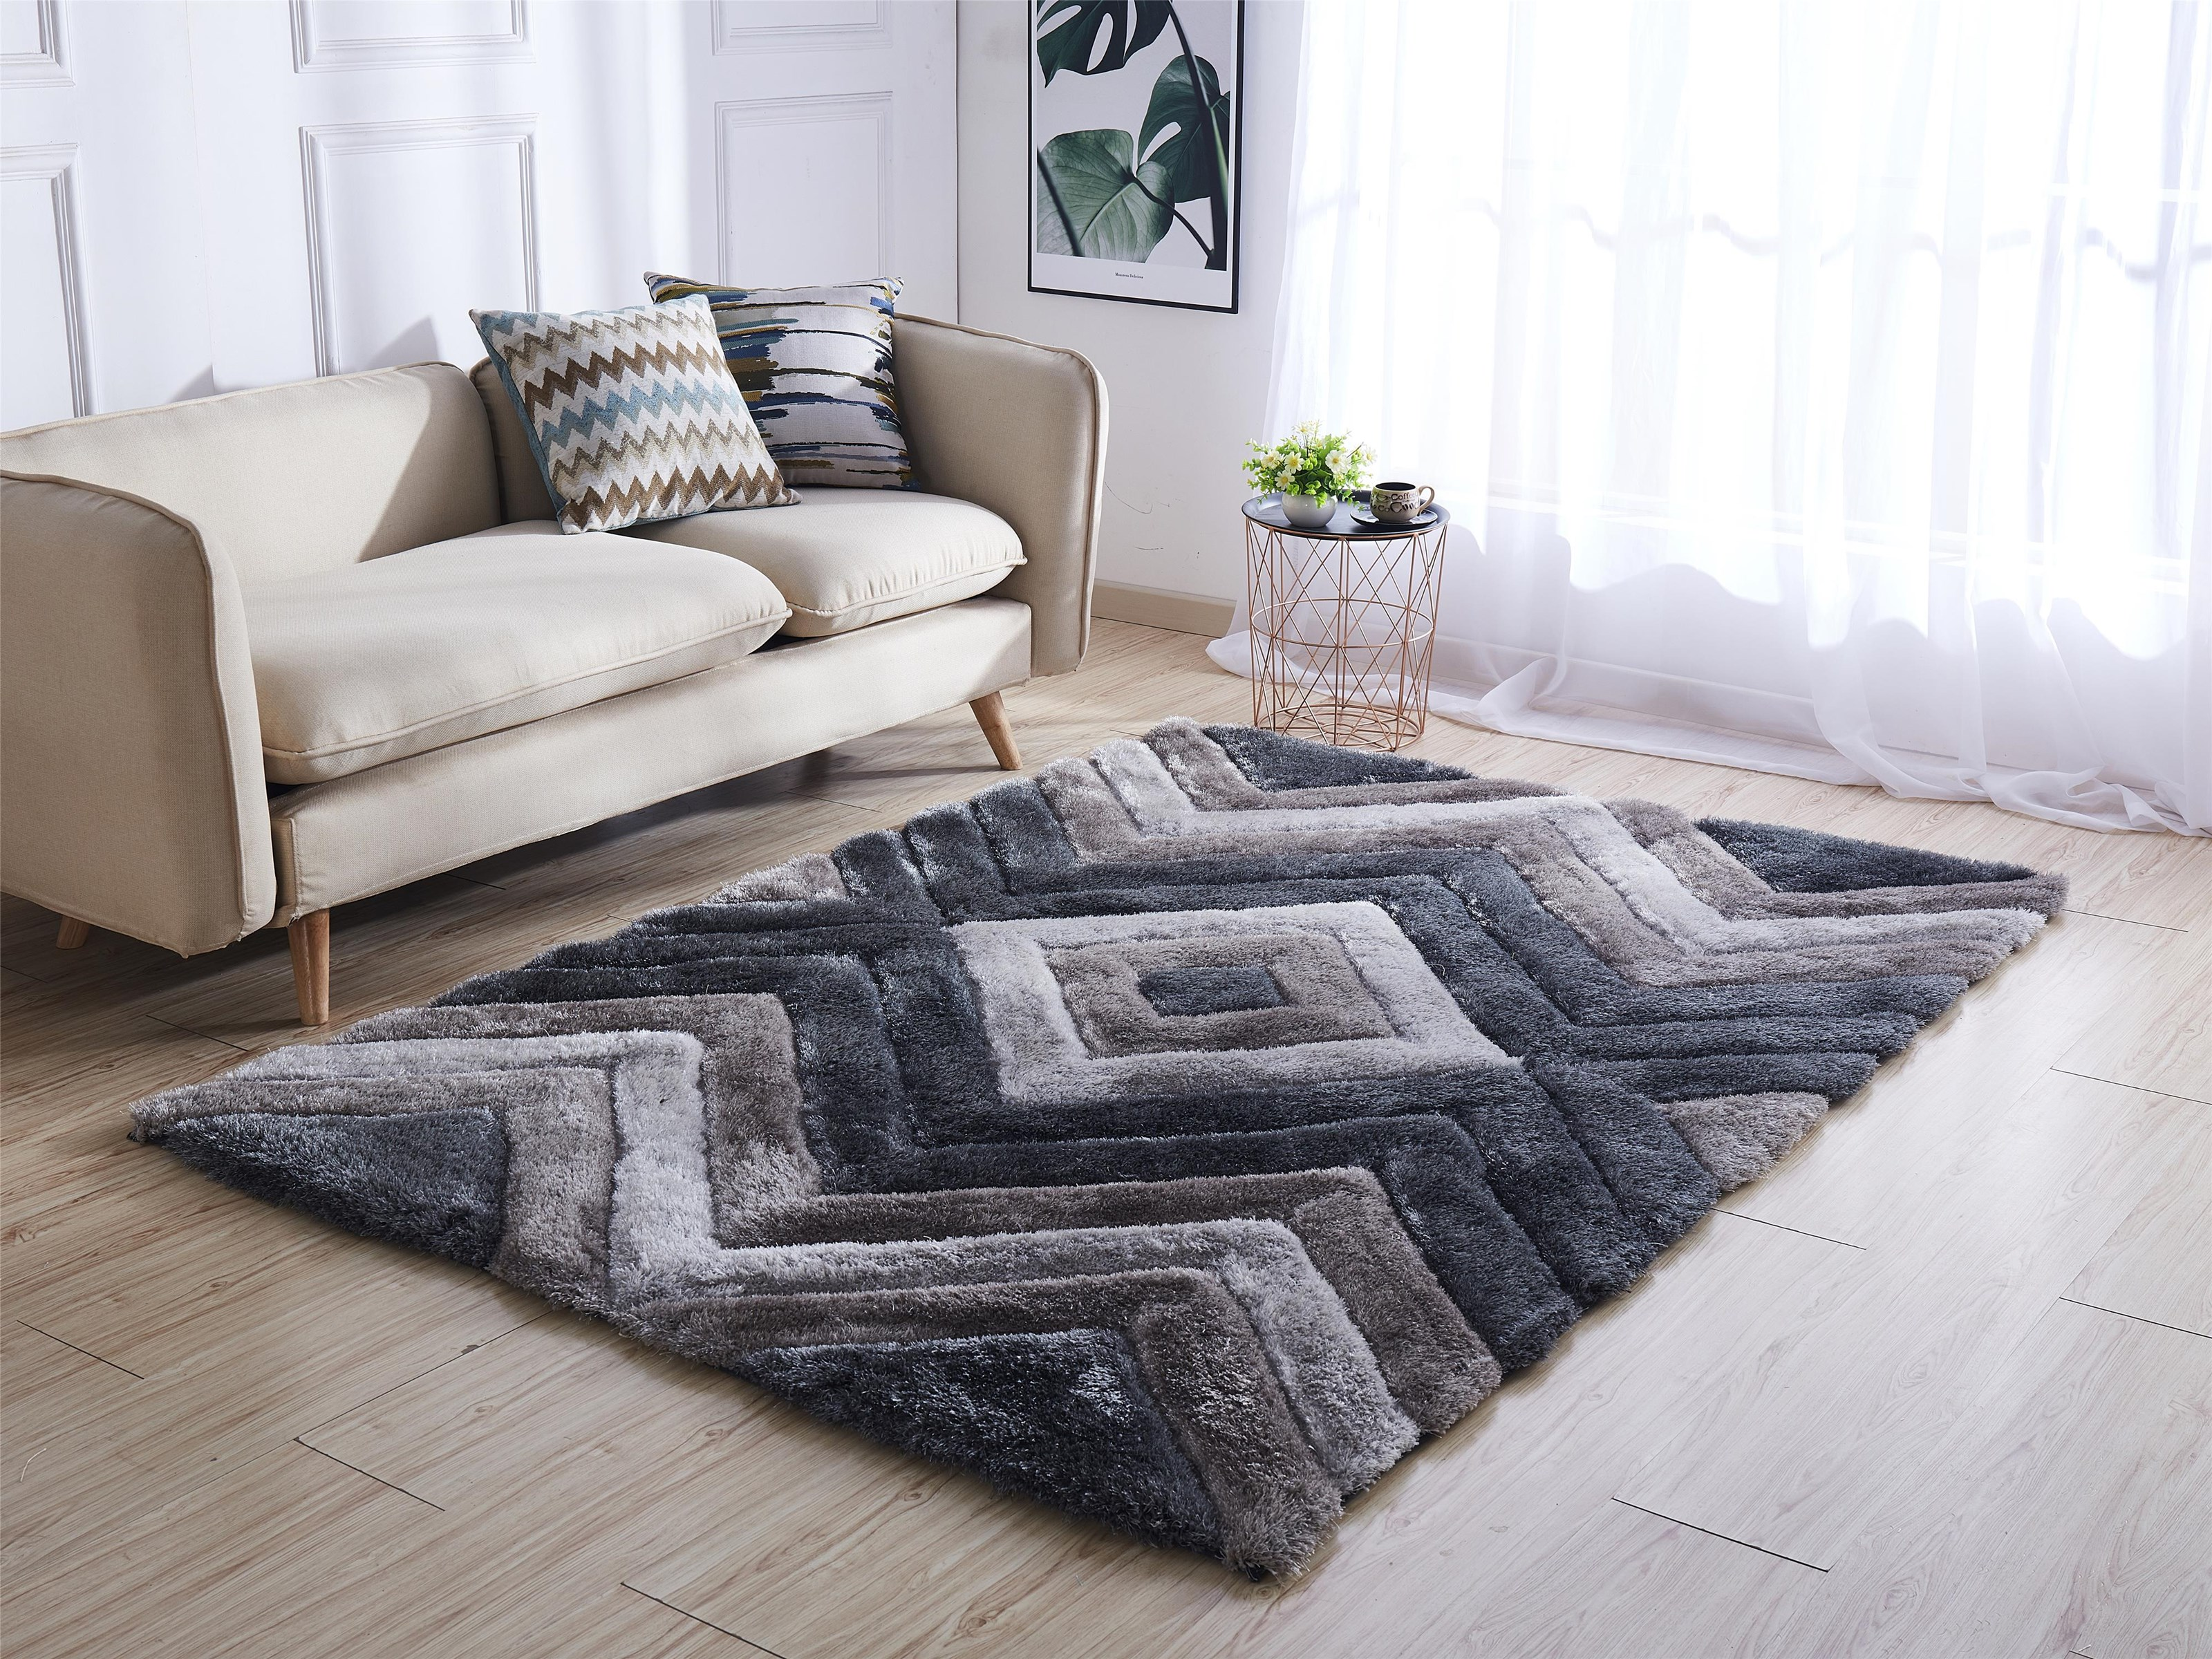 Mateos 5X7 Area Rug by MDA Rugs at Darvin Furniture